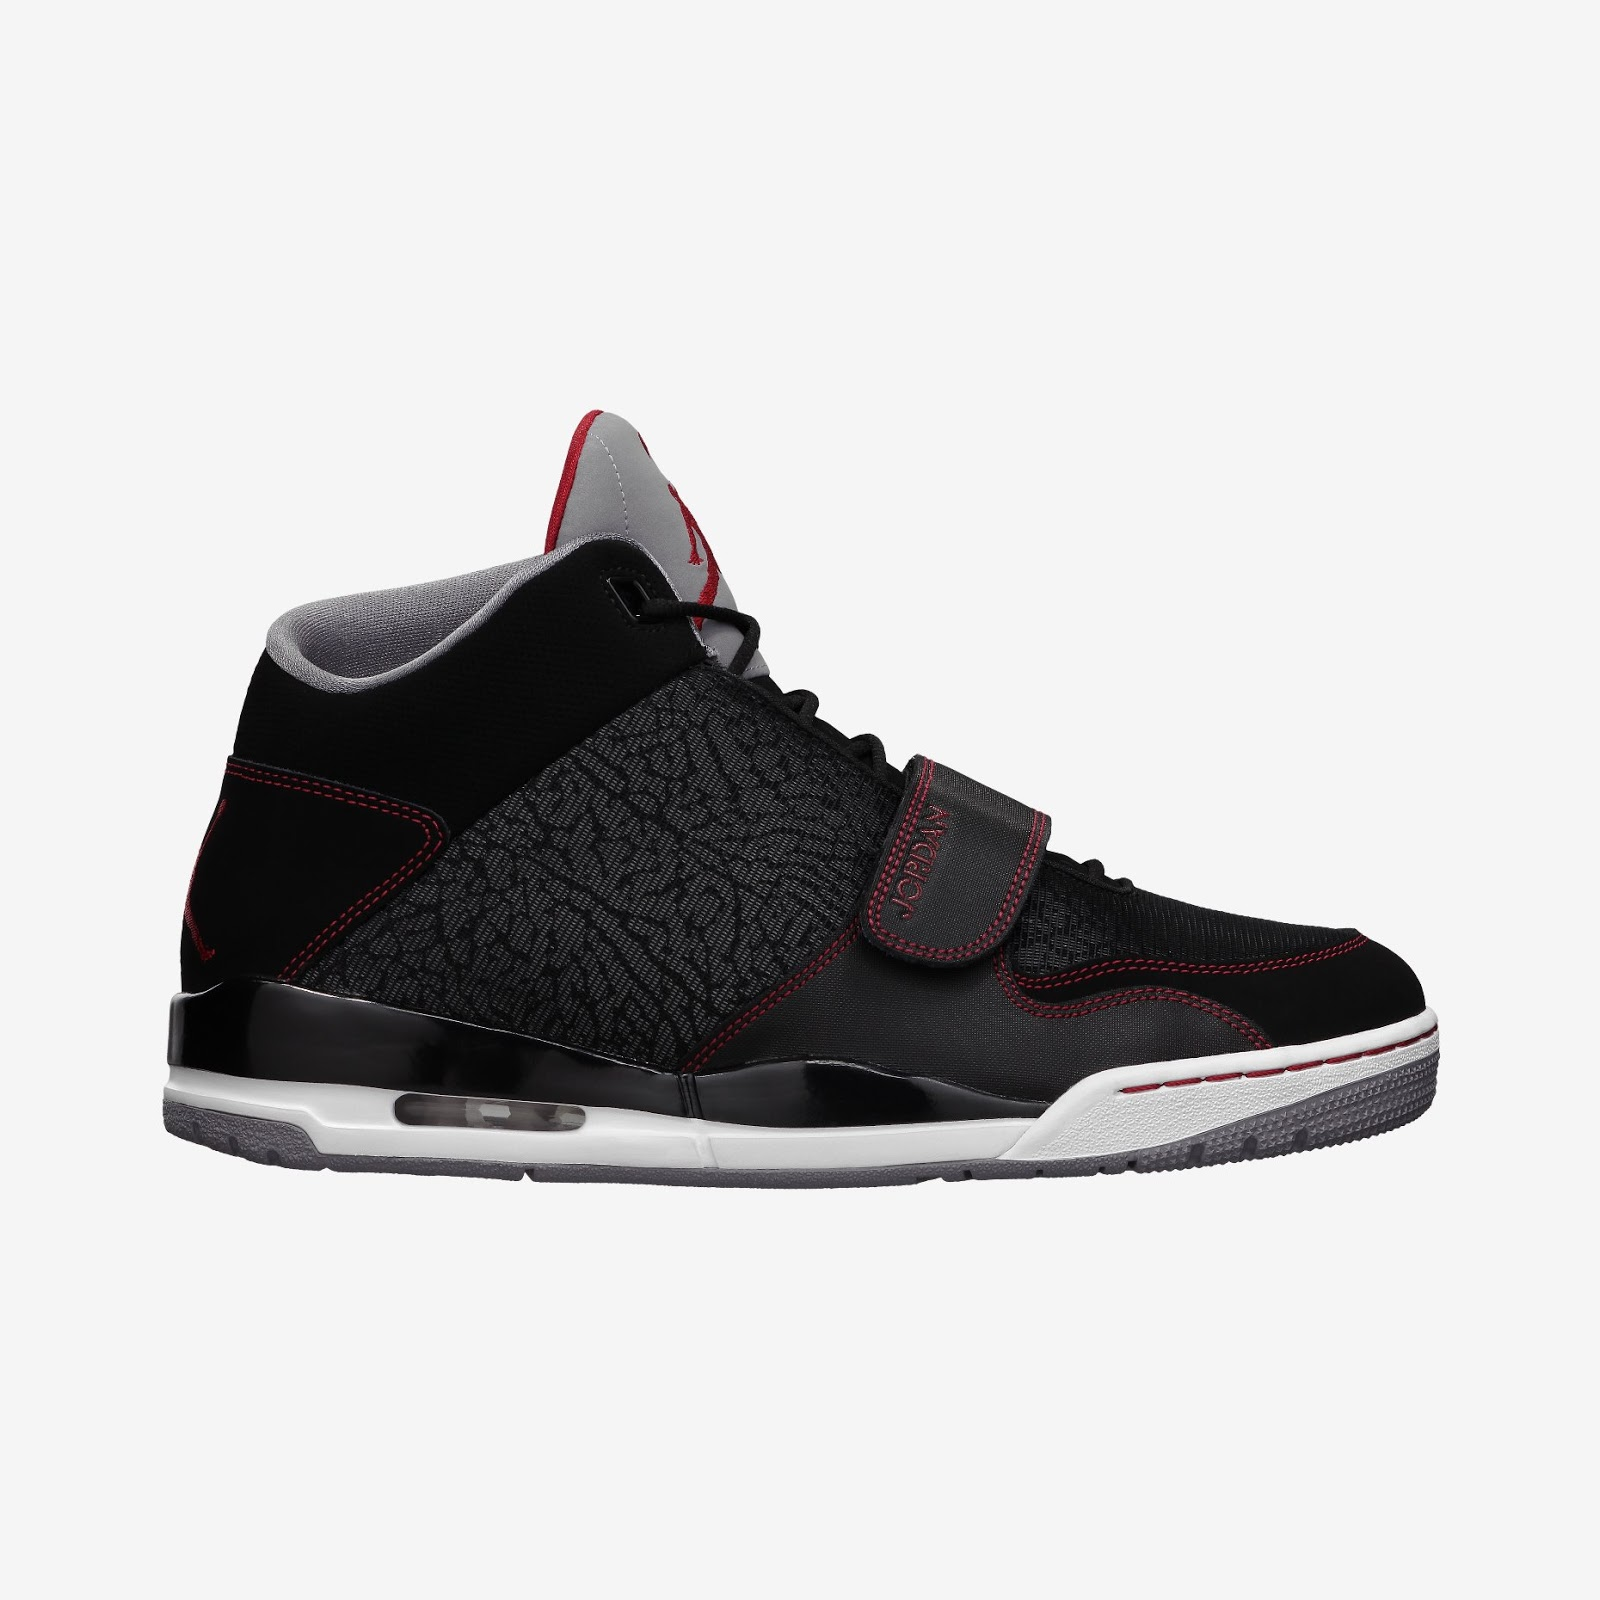 Jordan Flight Club 90s Men's Shoe